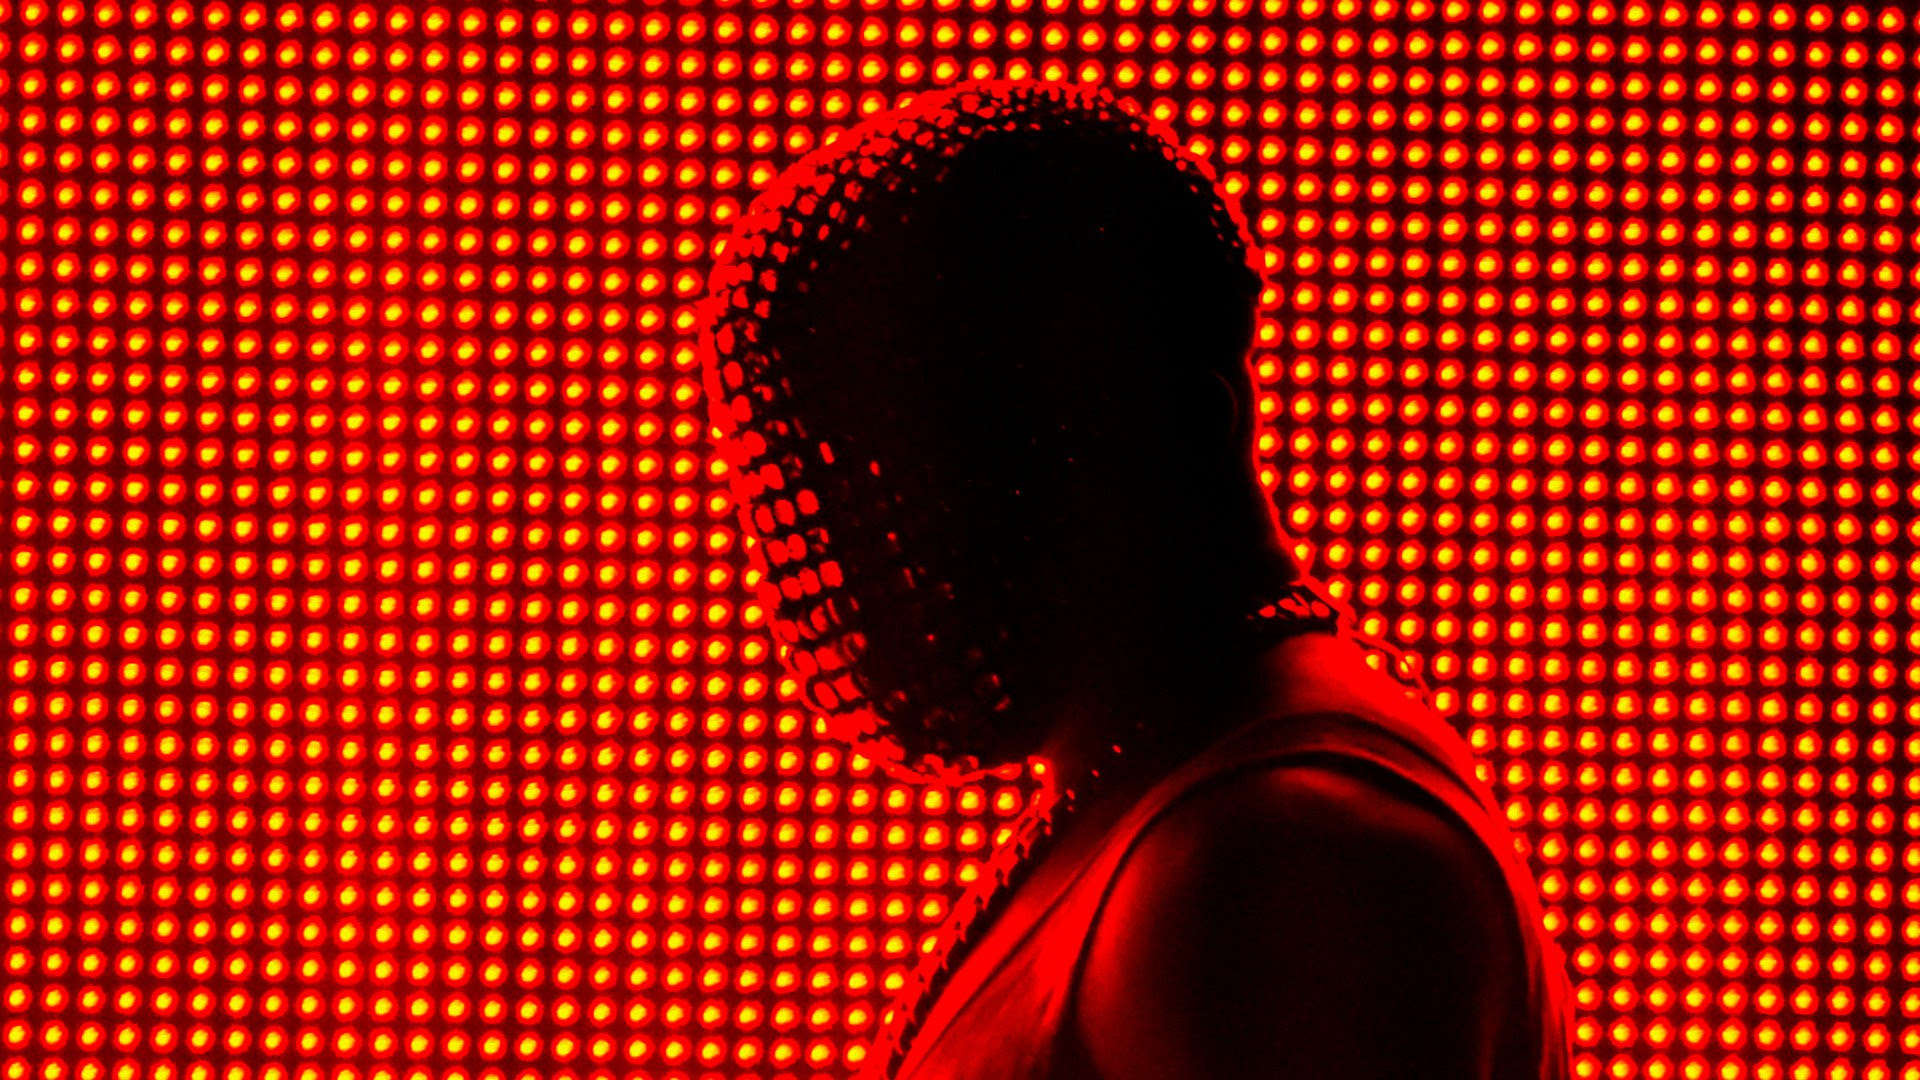 5 Kanye West Quotes From Made in America About Love, Hate and Kimye